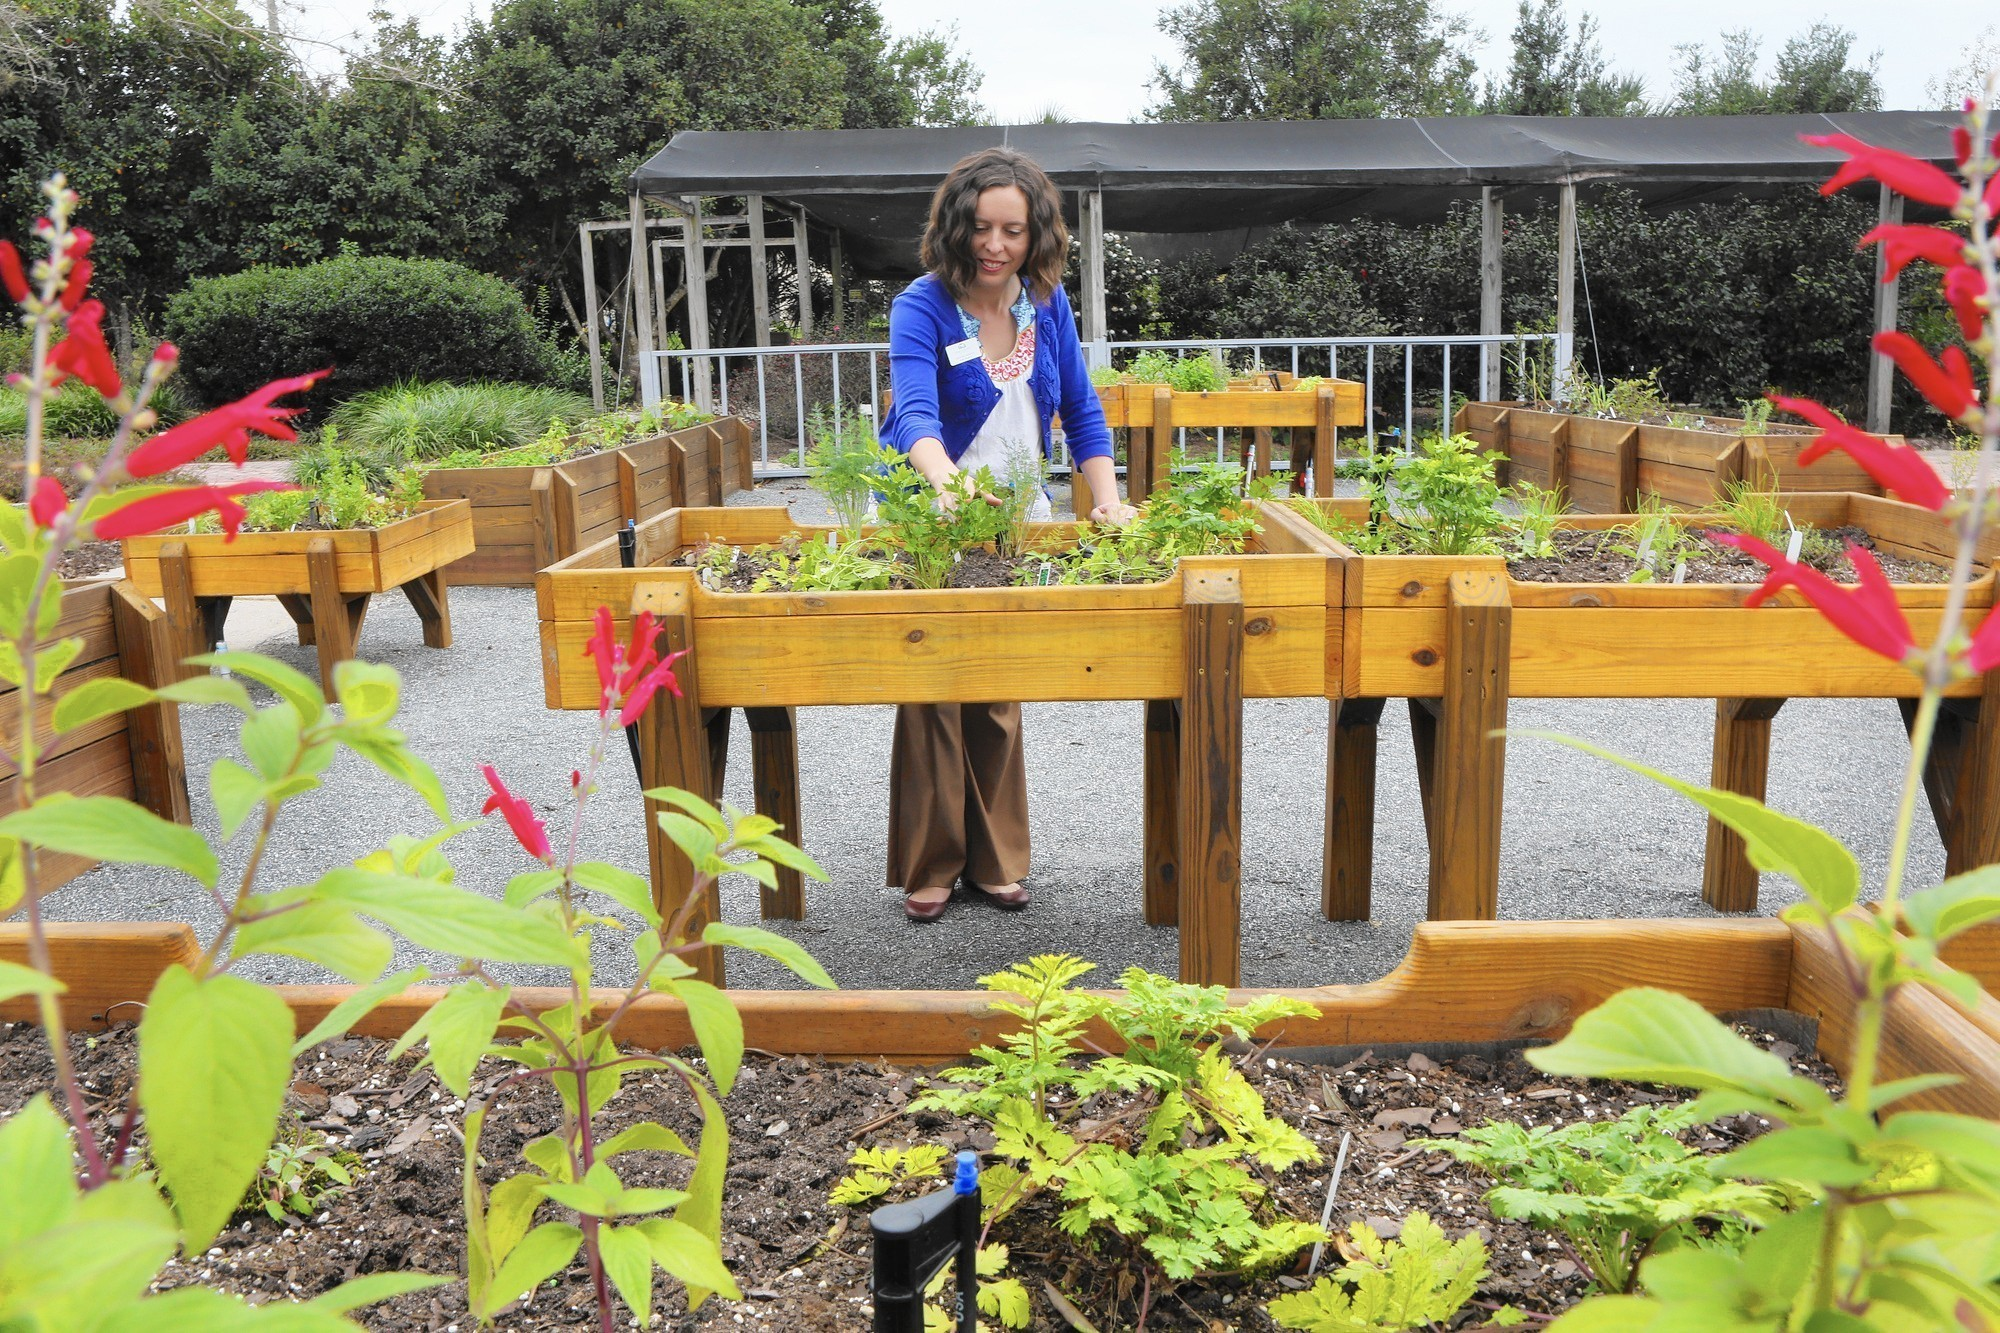 Ag Center Installs Wheelchair Accessible Herb Garden   Orlando Sentinel